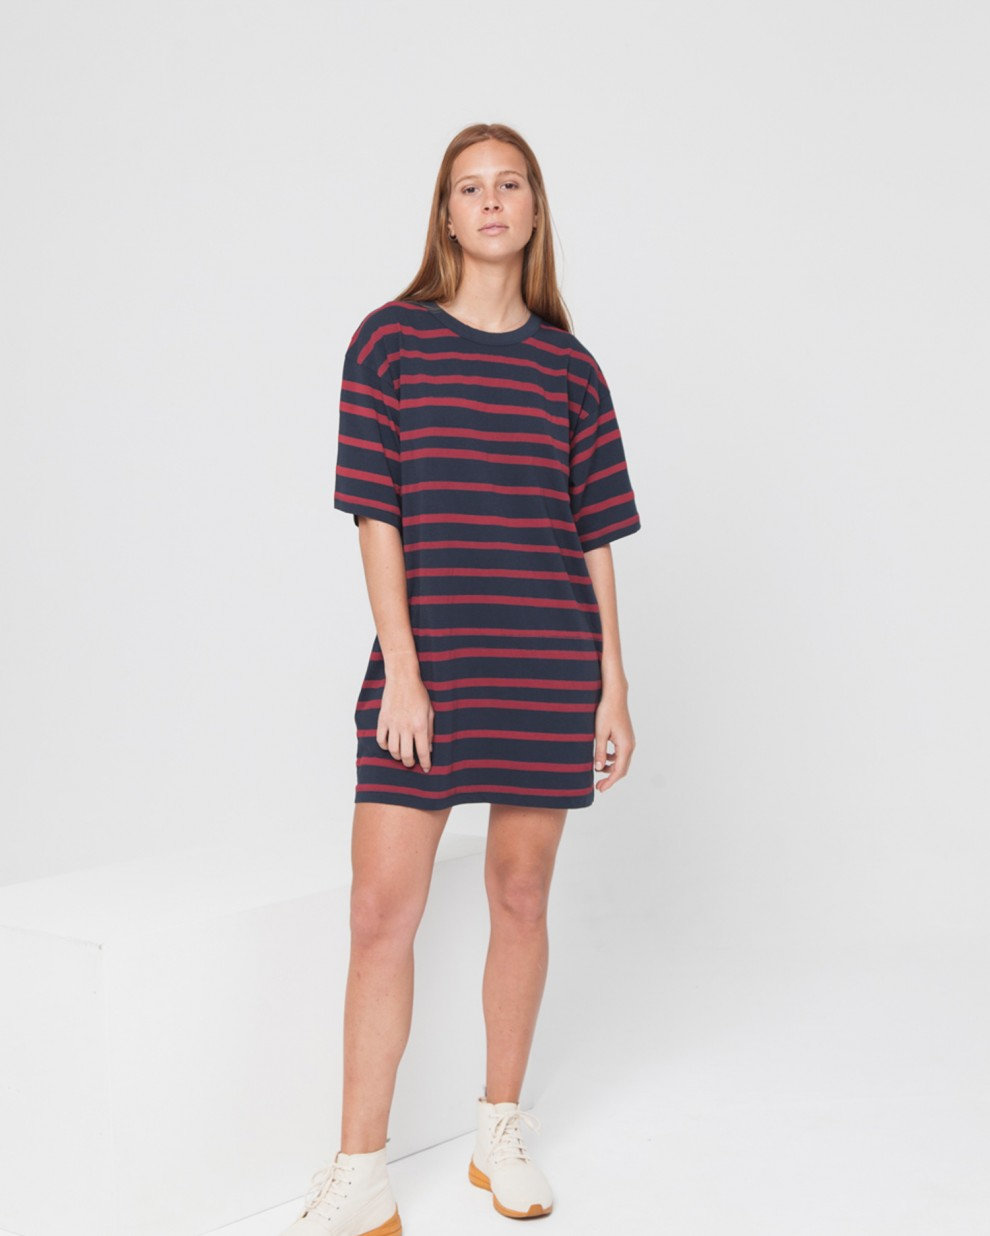 Aquarella Stripes Tee Dress